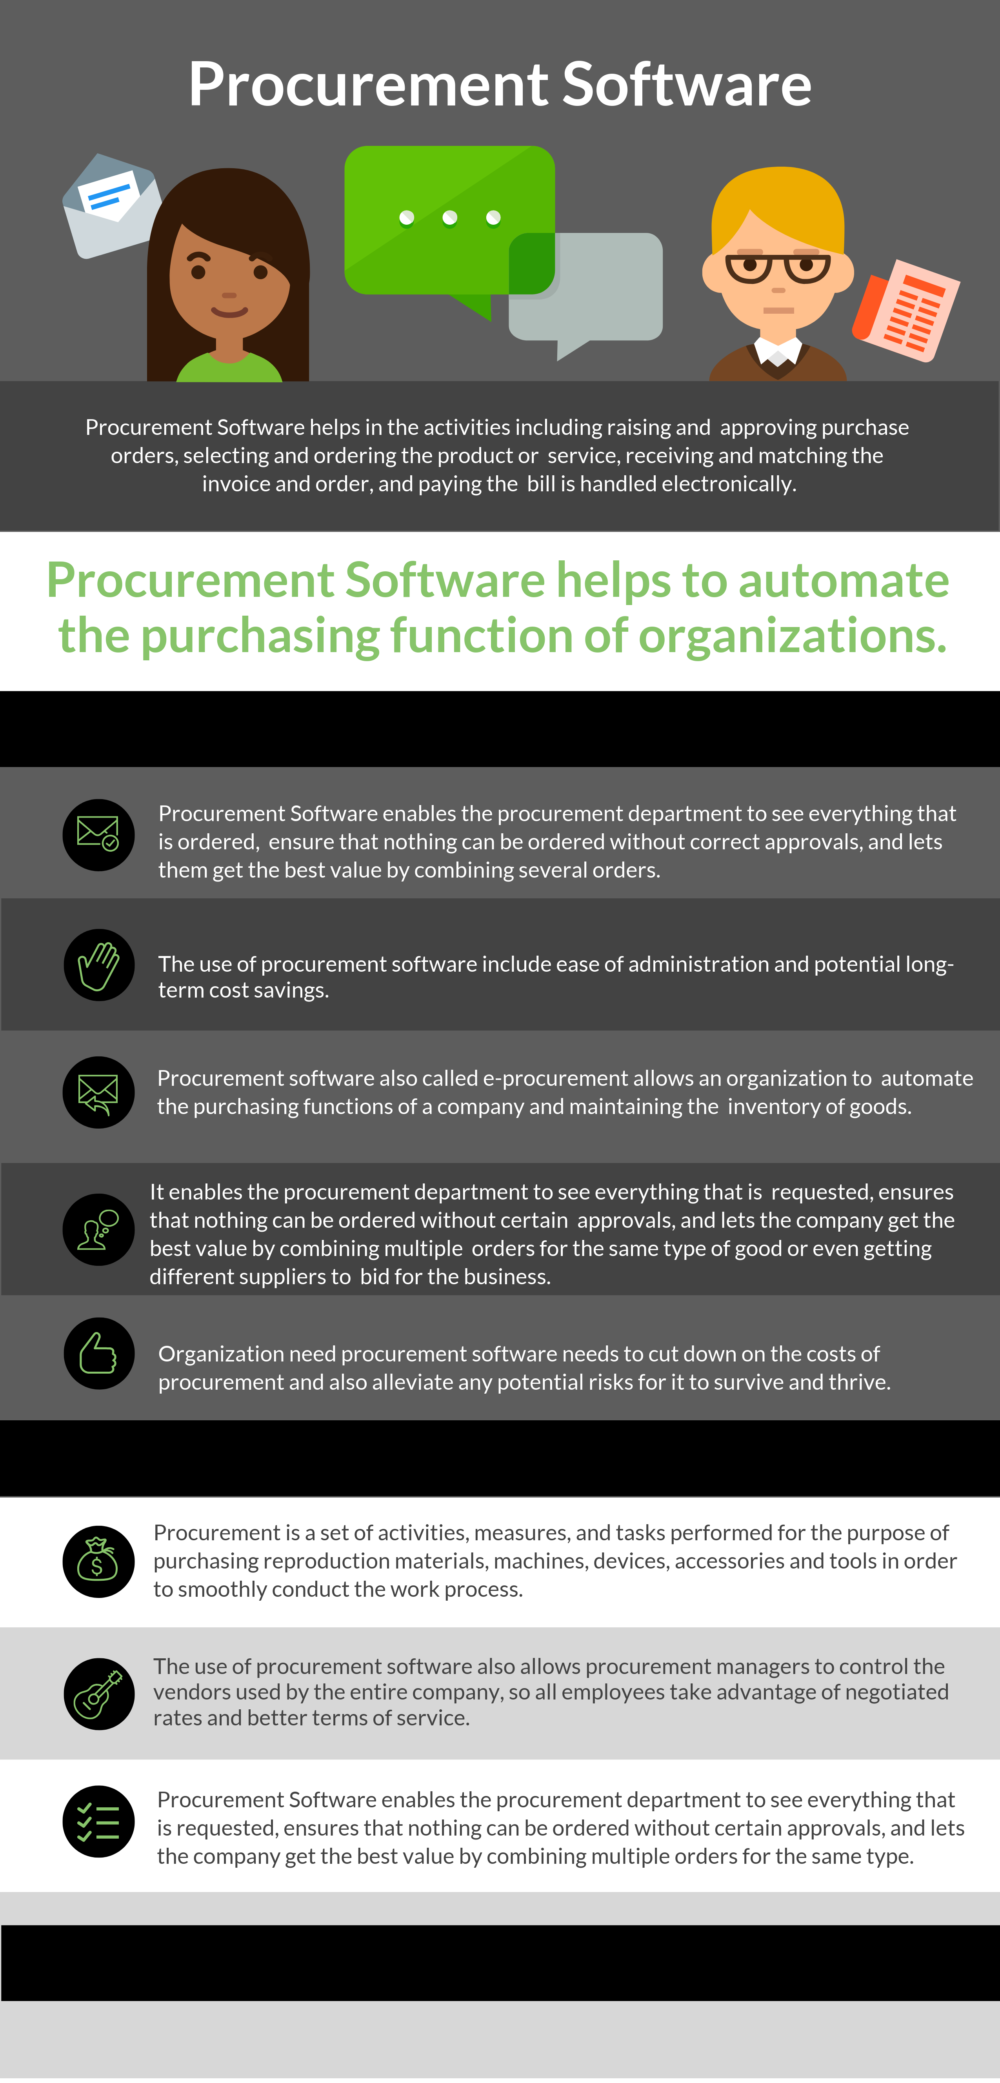 50 Free and Top Procurement Software